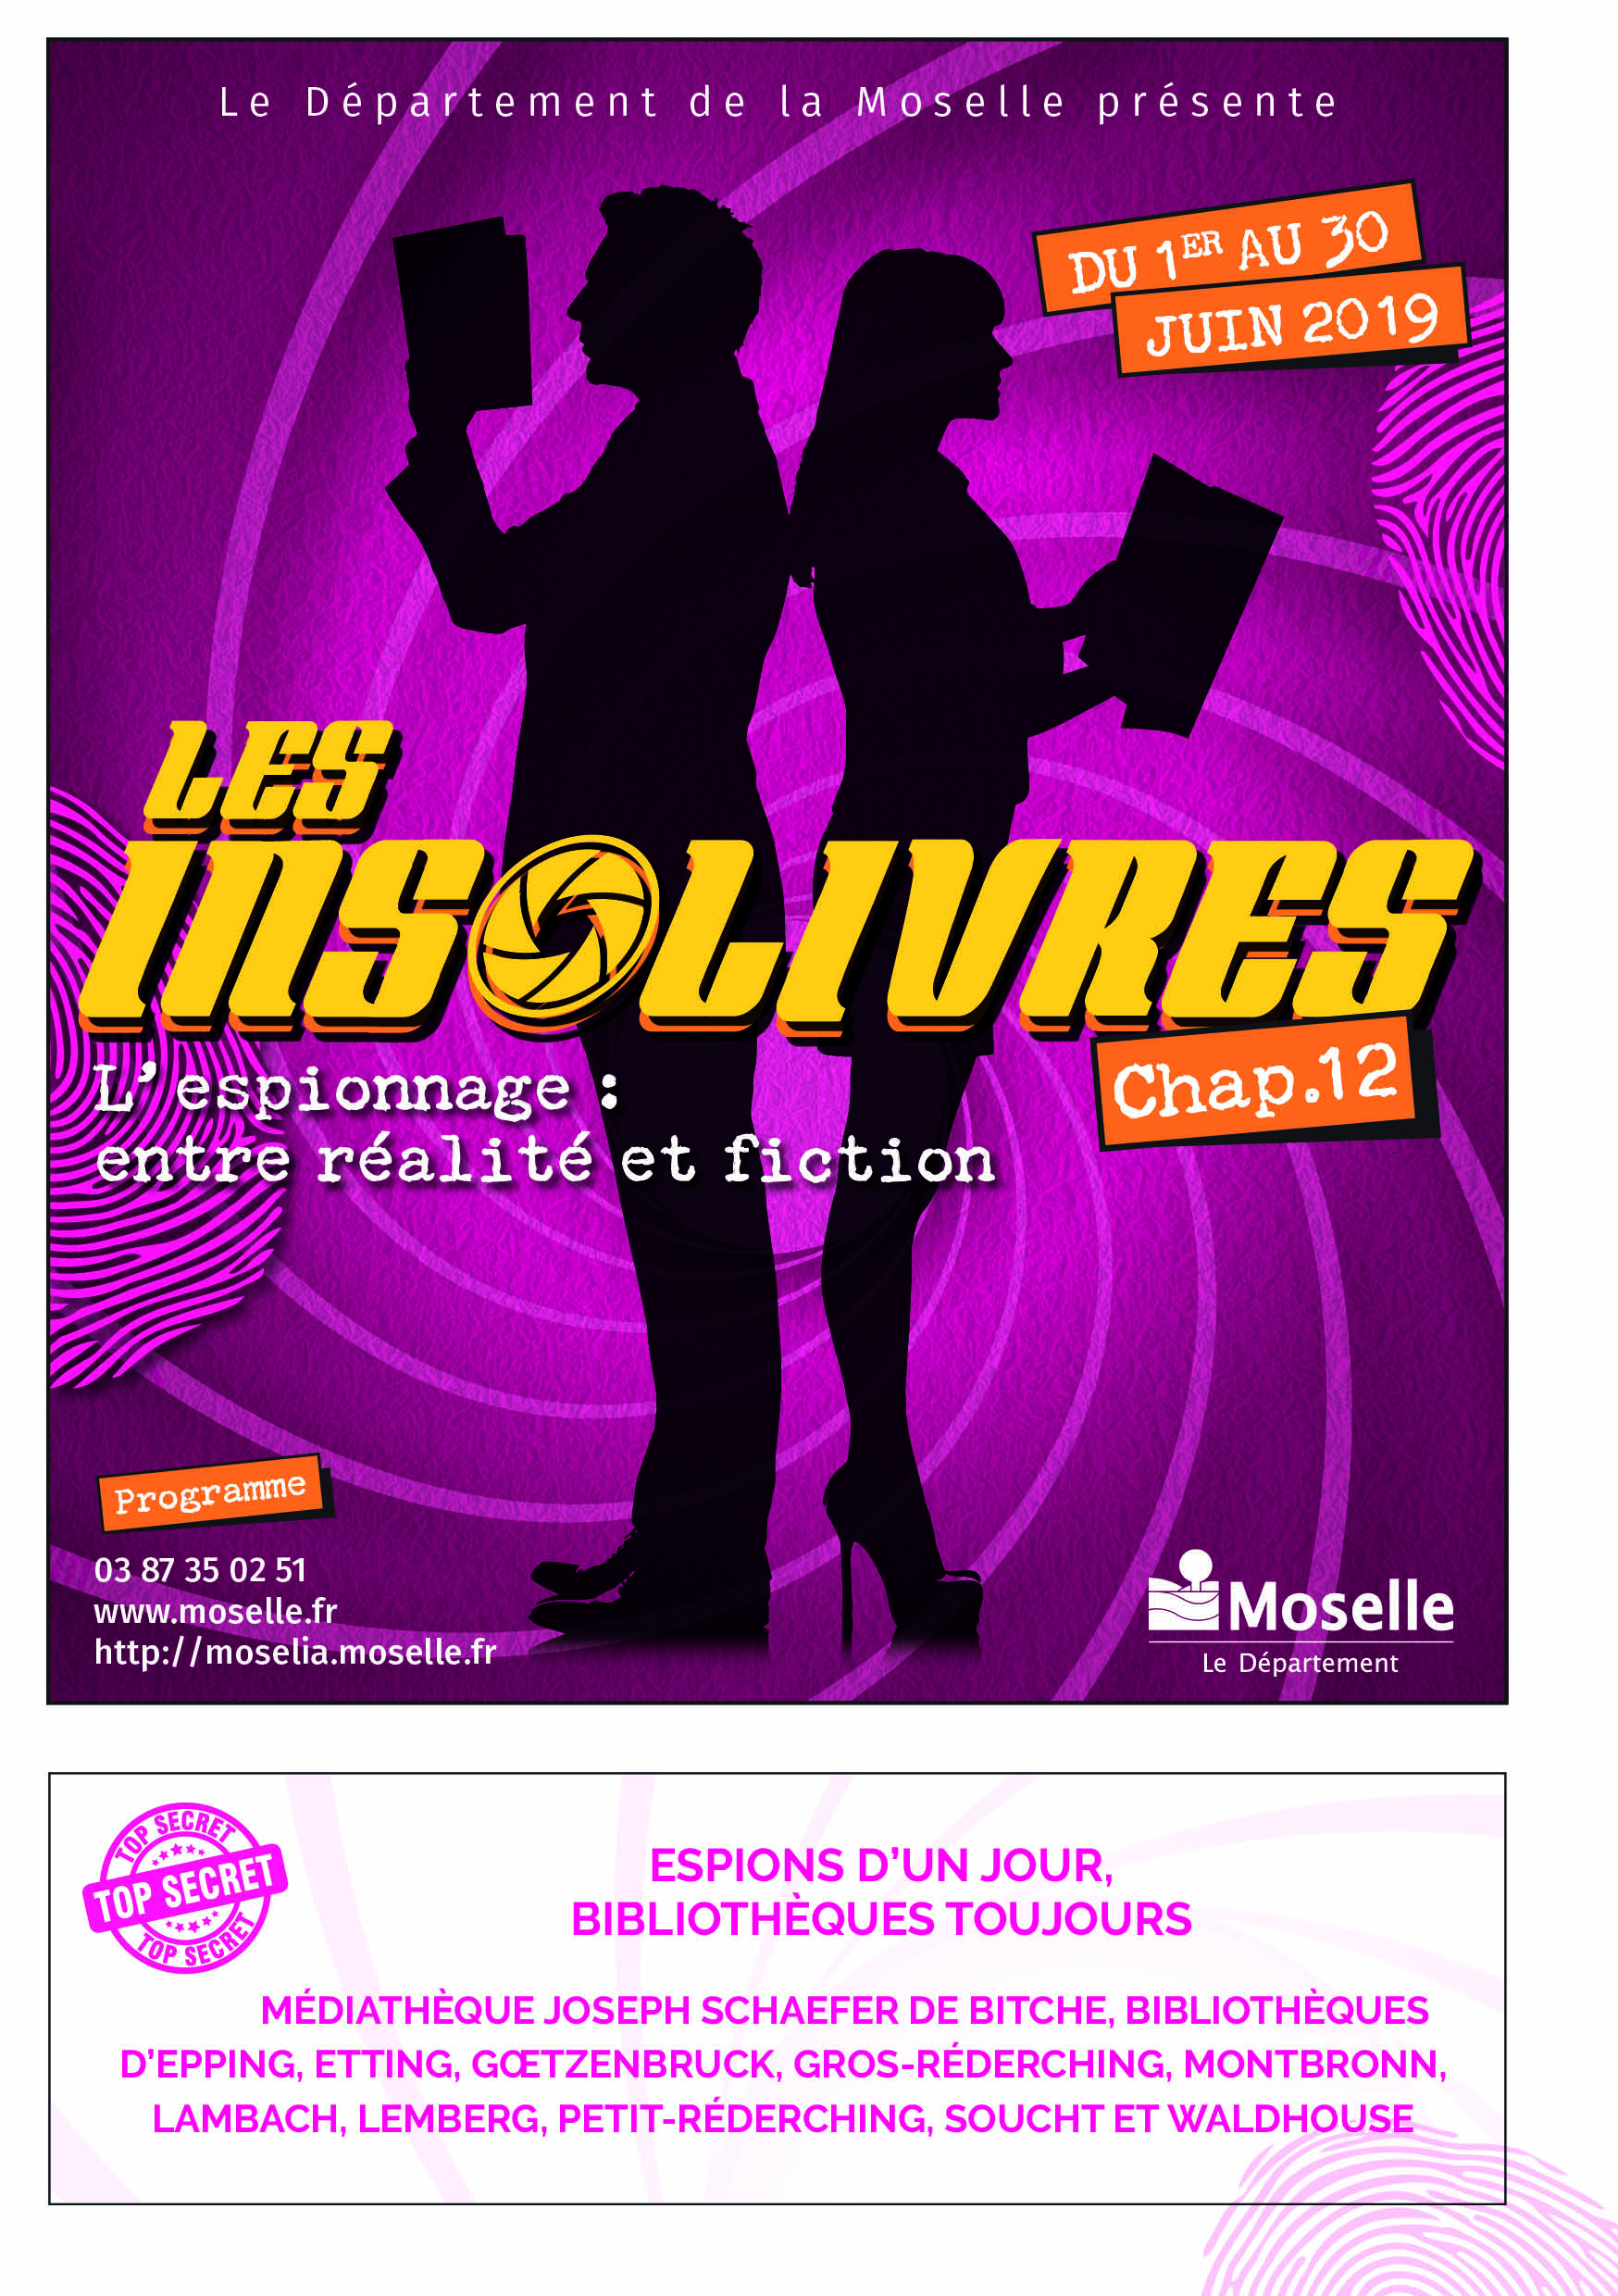 LES INSOLIVRES : ESCAPE GAME : LES TABLES DE L'IMAGINAIRES